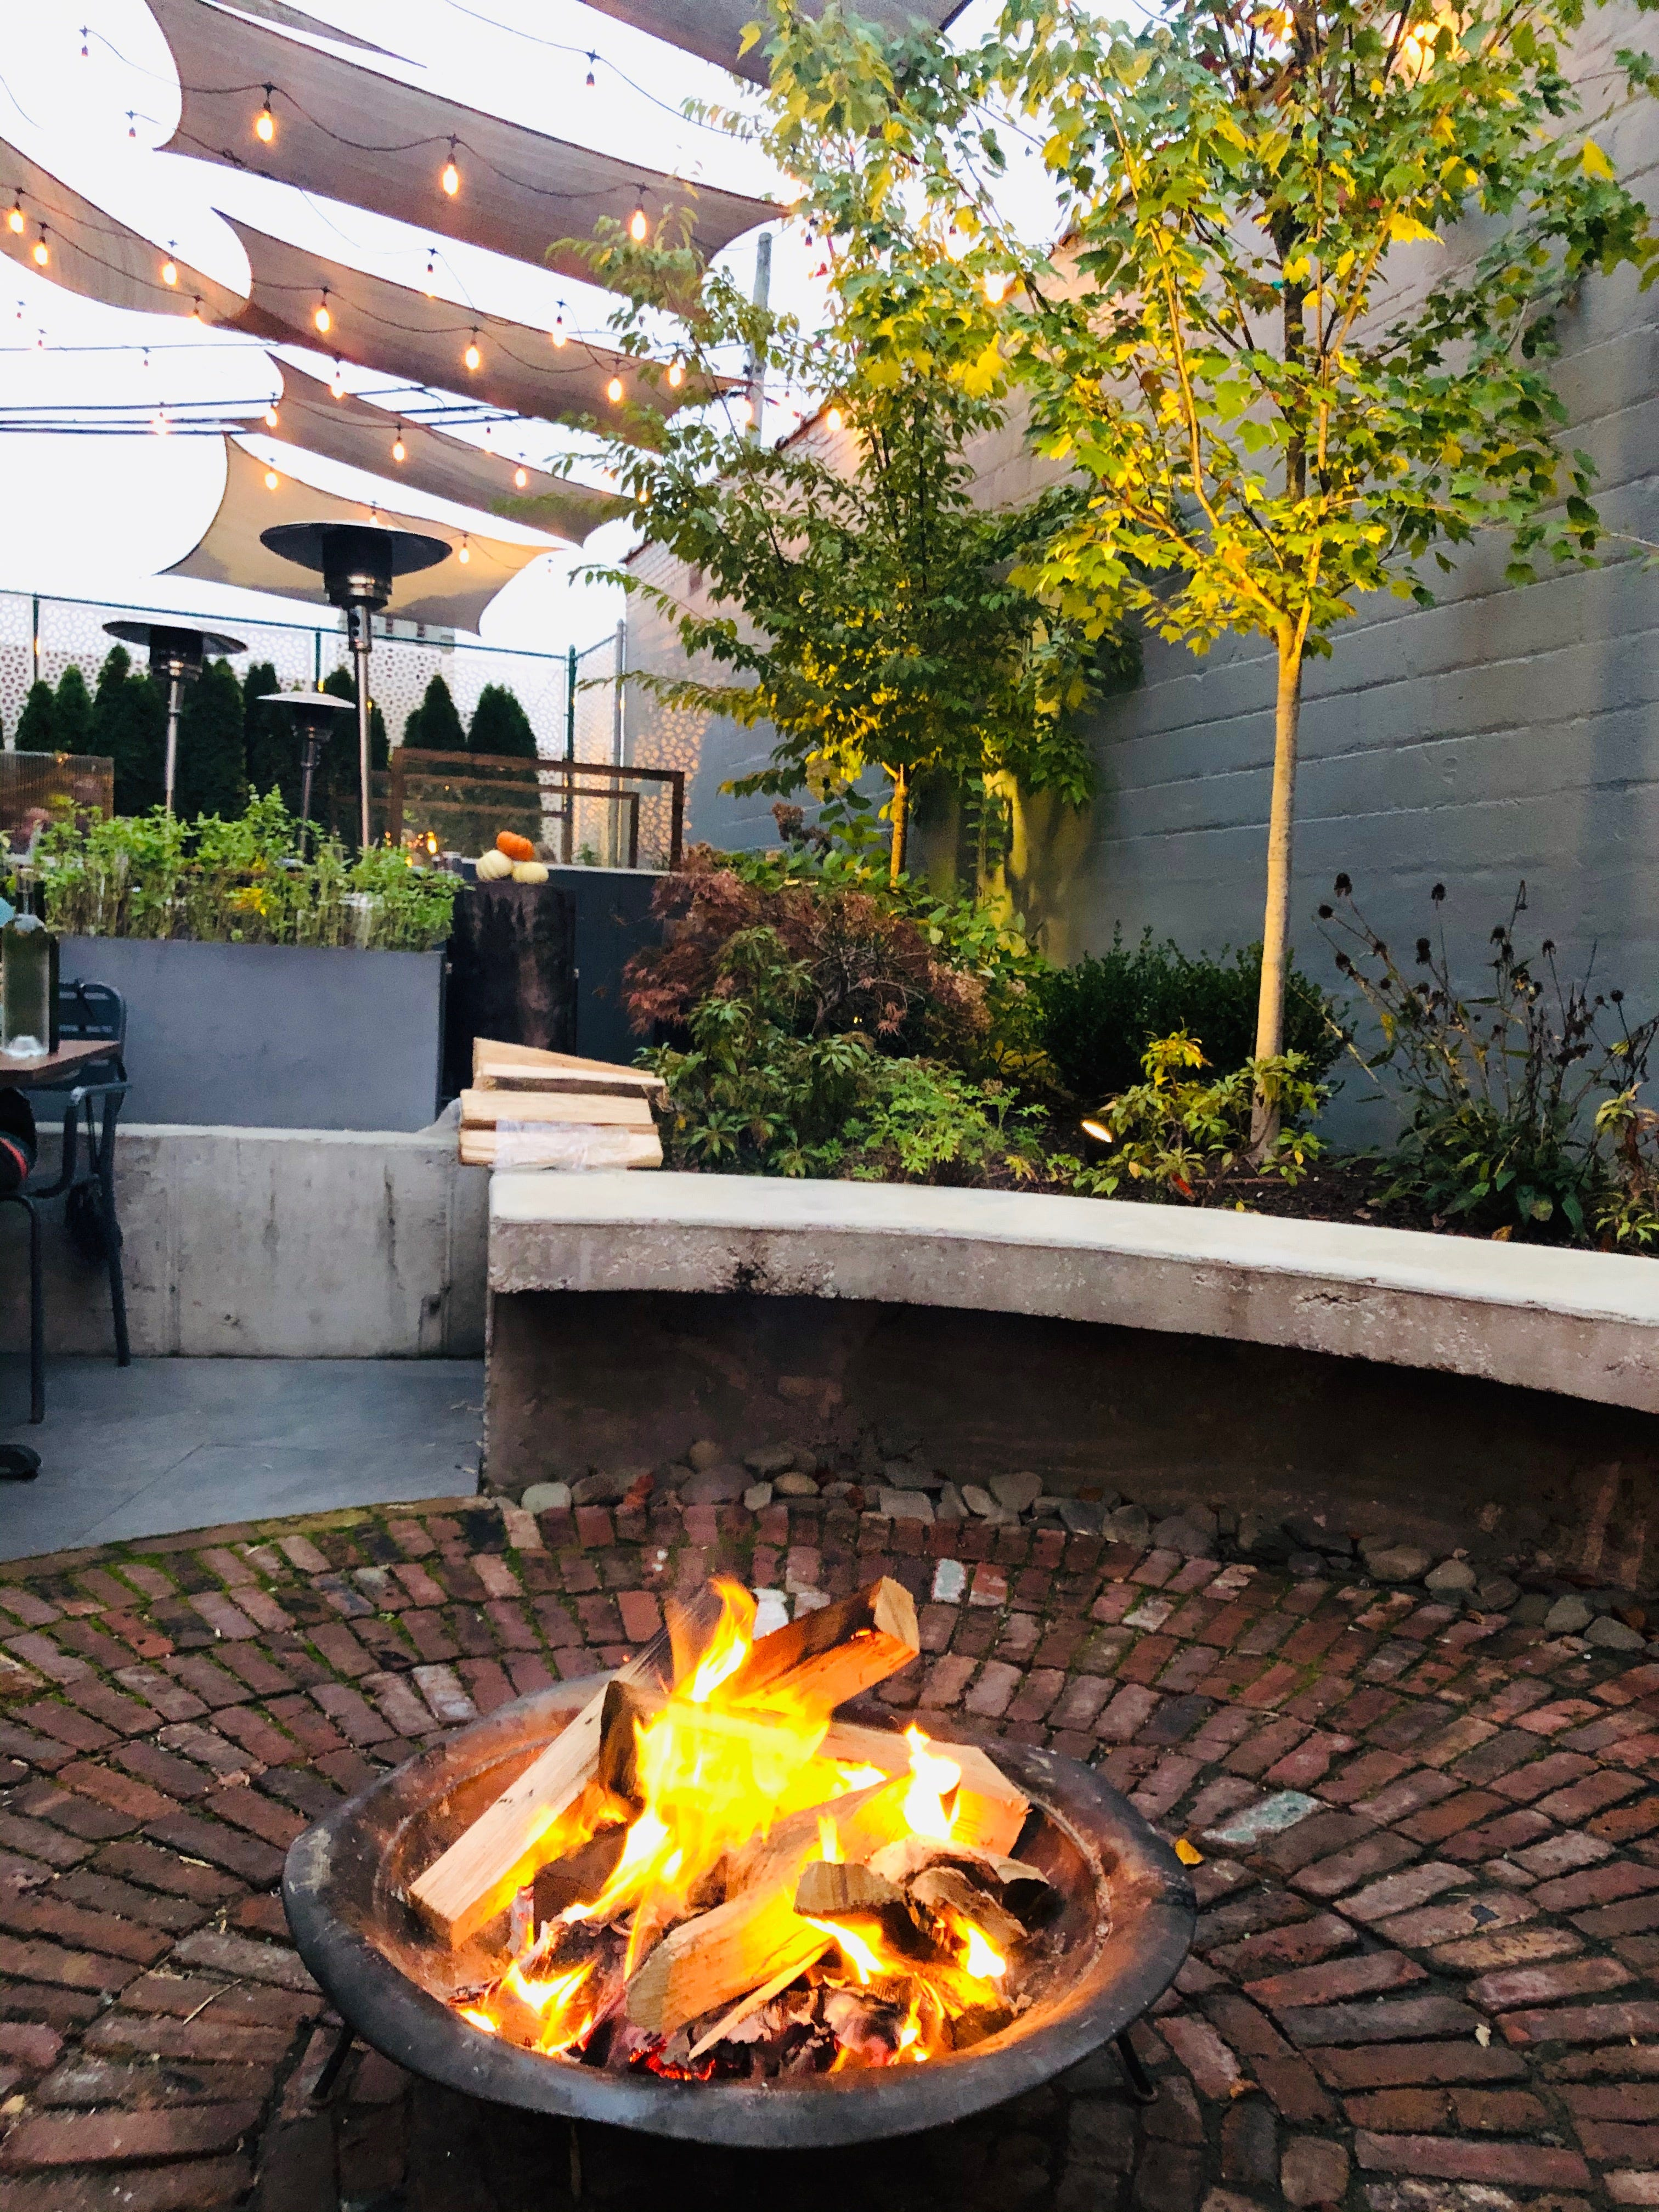 Nj Restaurants With Fire Pits For Outdoor Dining